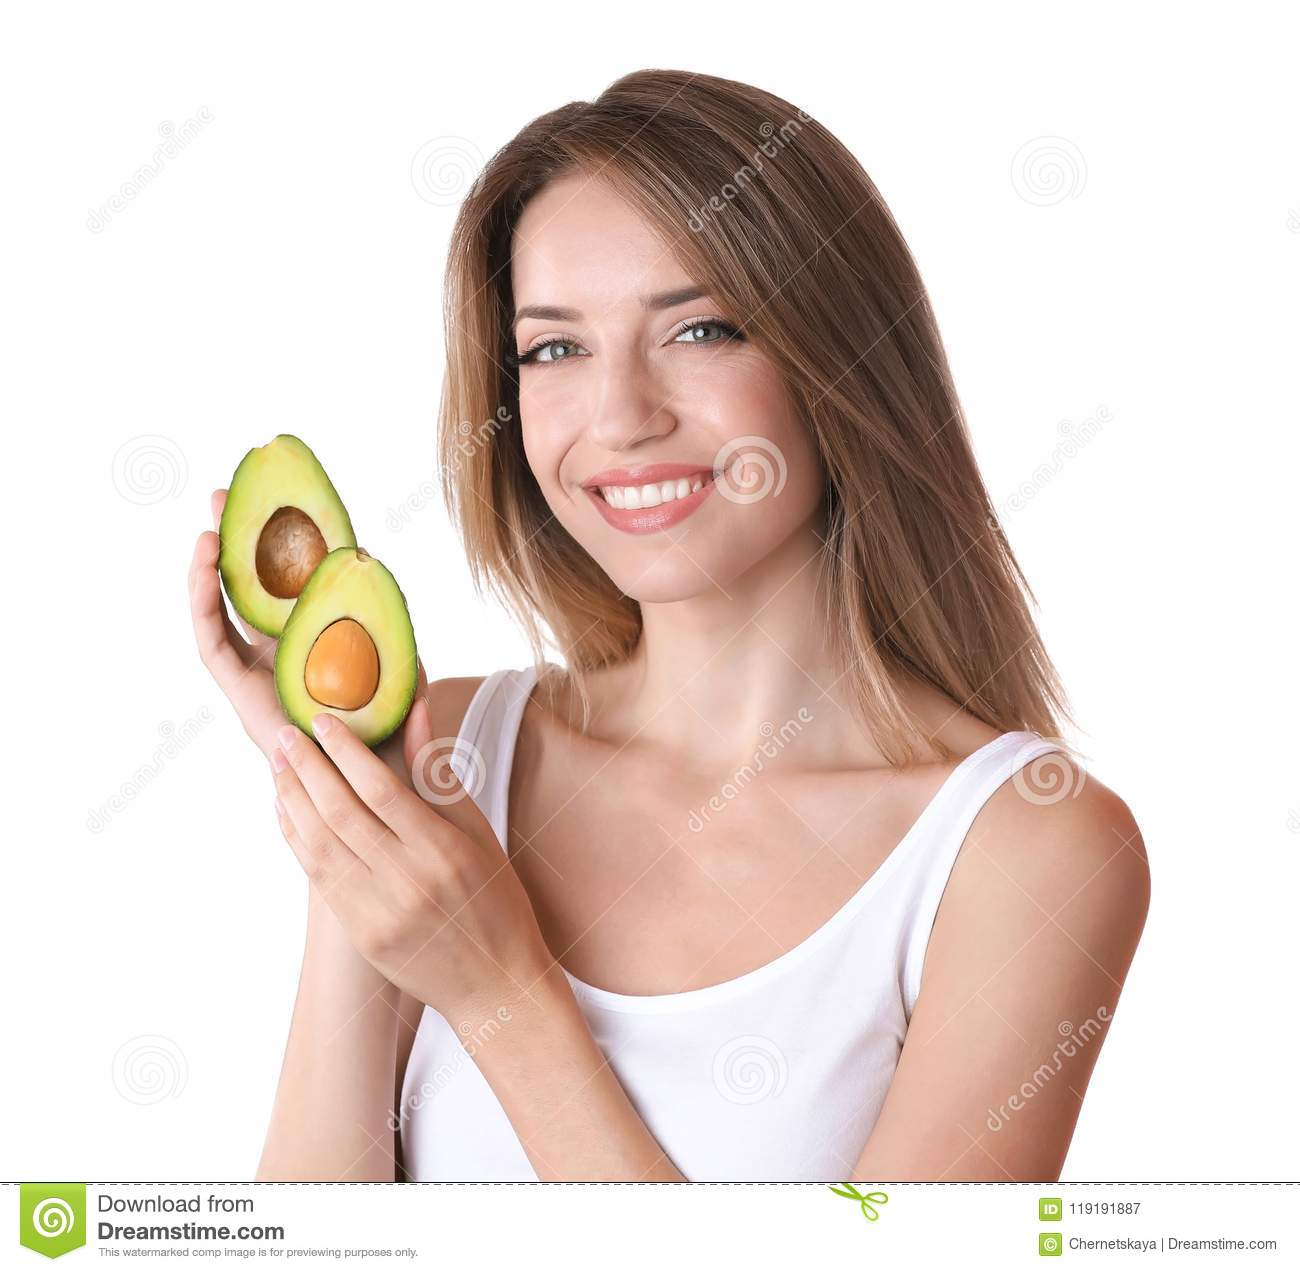 Portrait of young beautiful woman with ripe avocado on white background